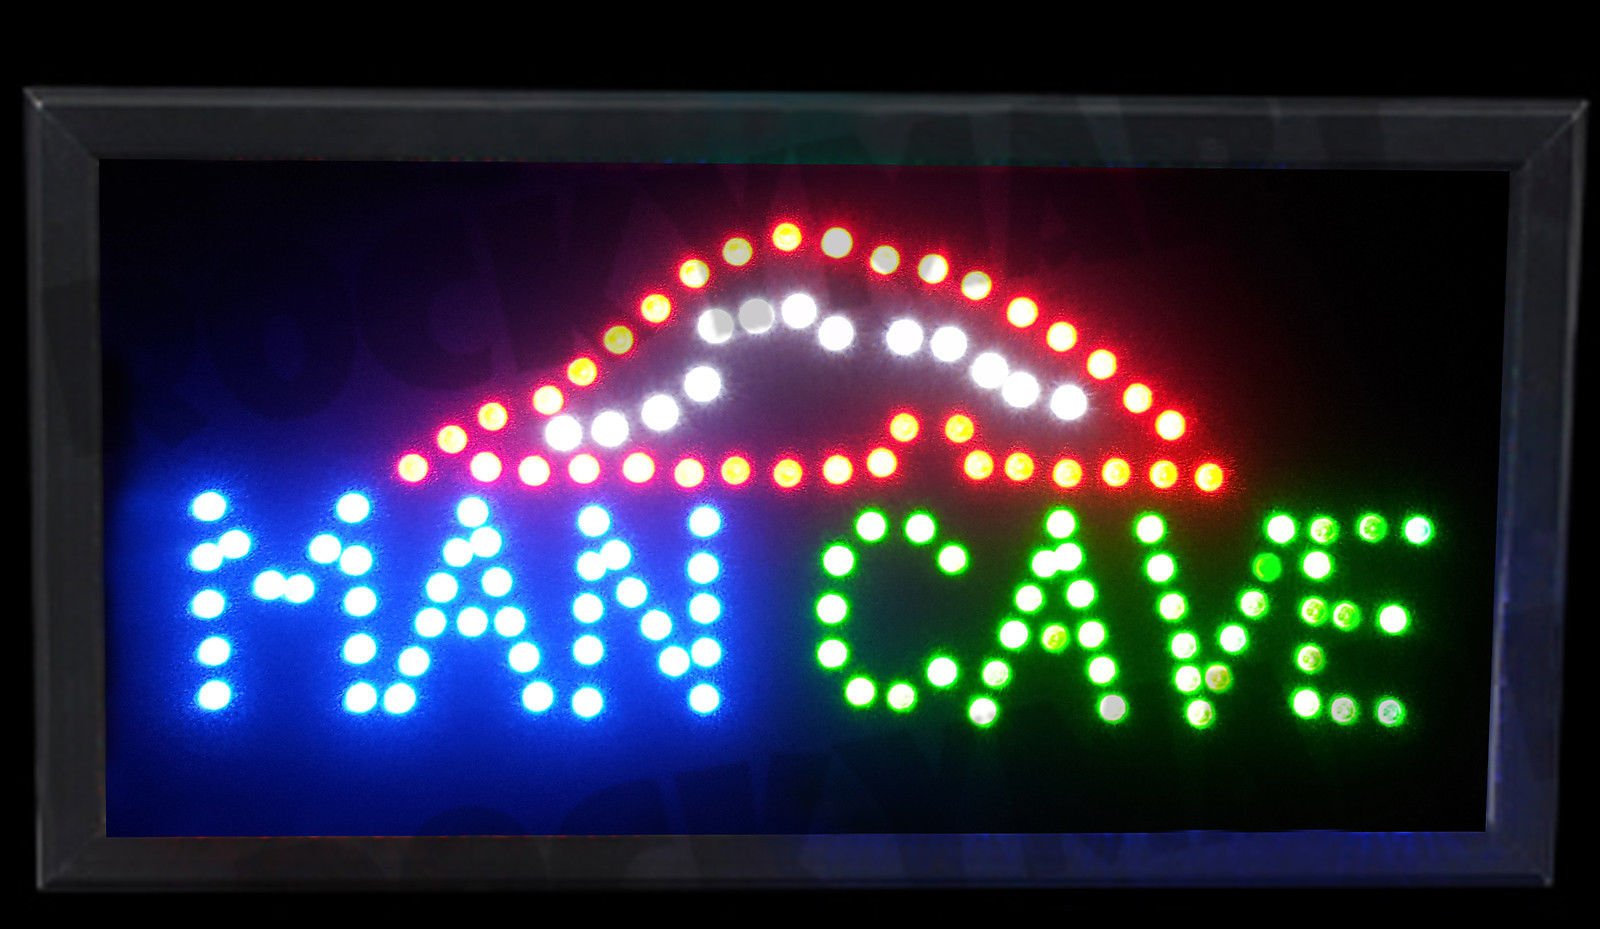 Man Cave LED Light Up Sign 19.5''x10''x1.25'' for Party Room, Bar, Game room, Basement, Mancave, Bedroom and more.